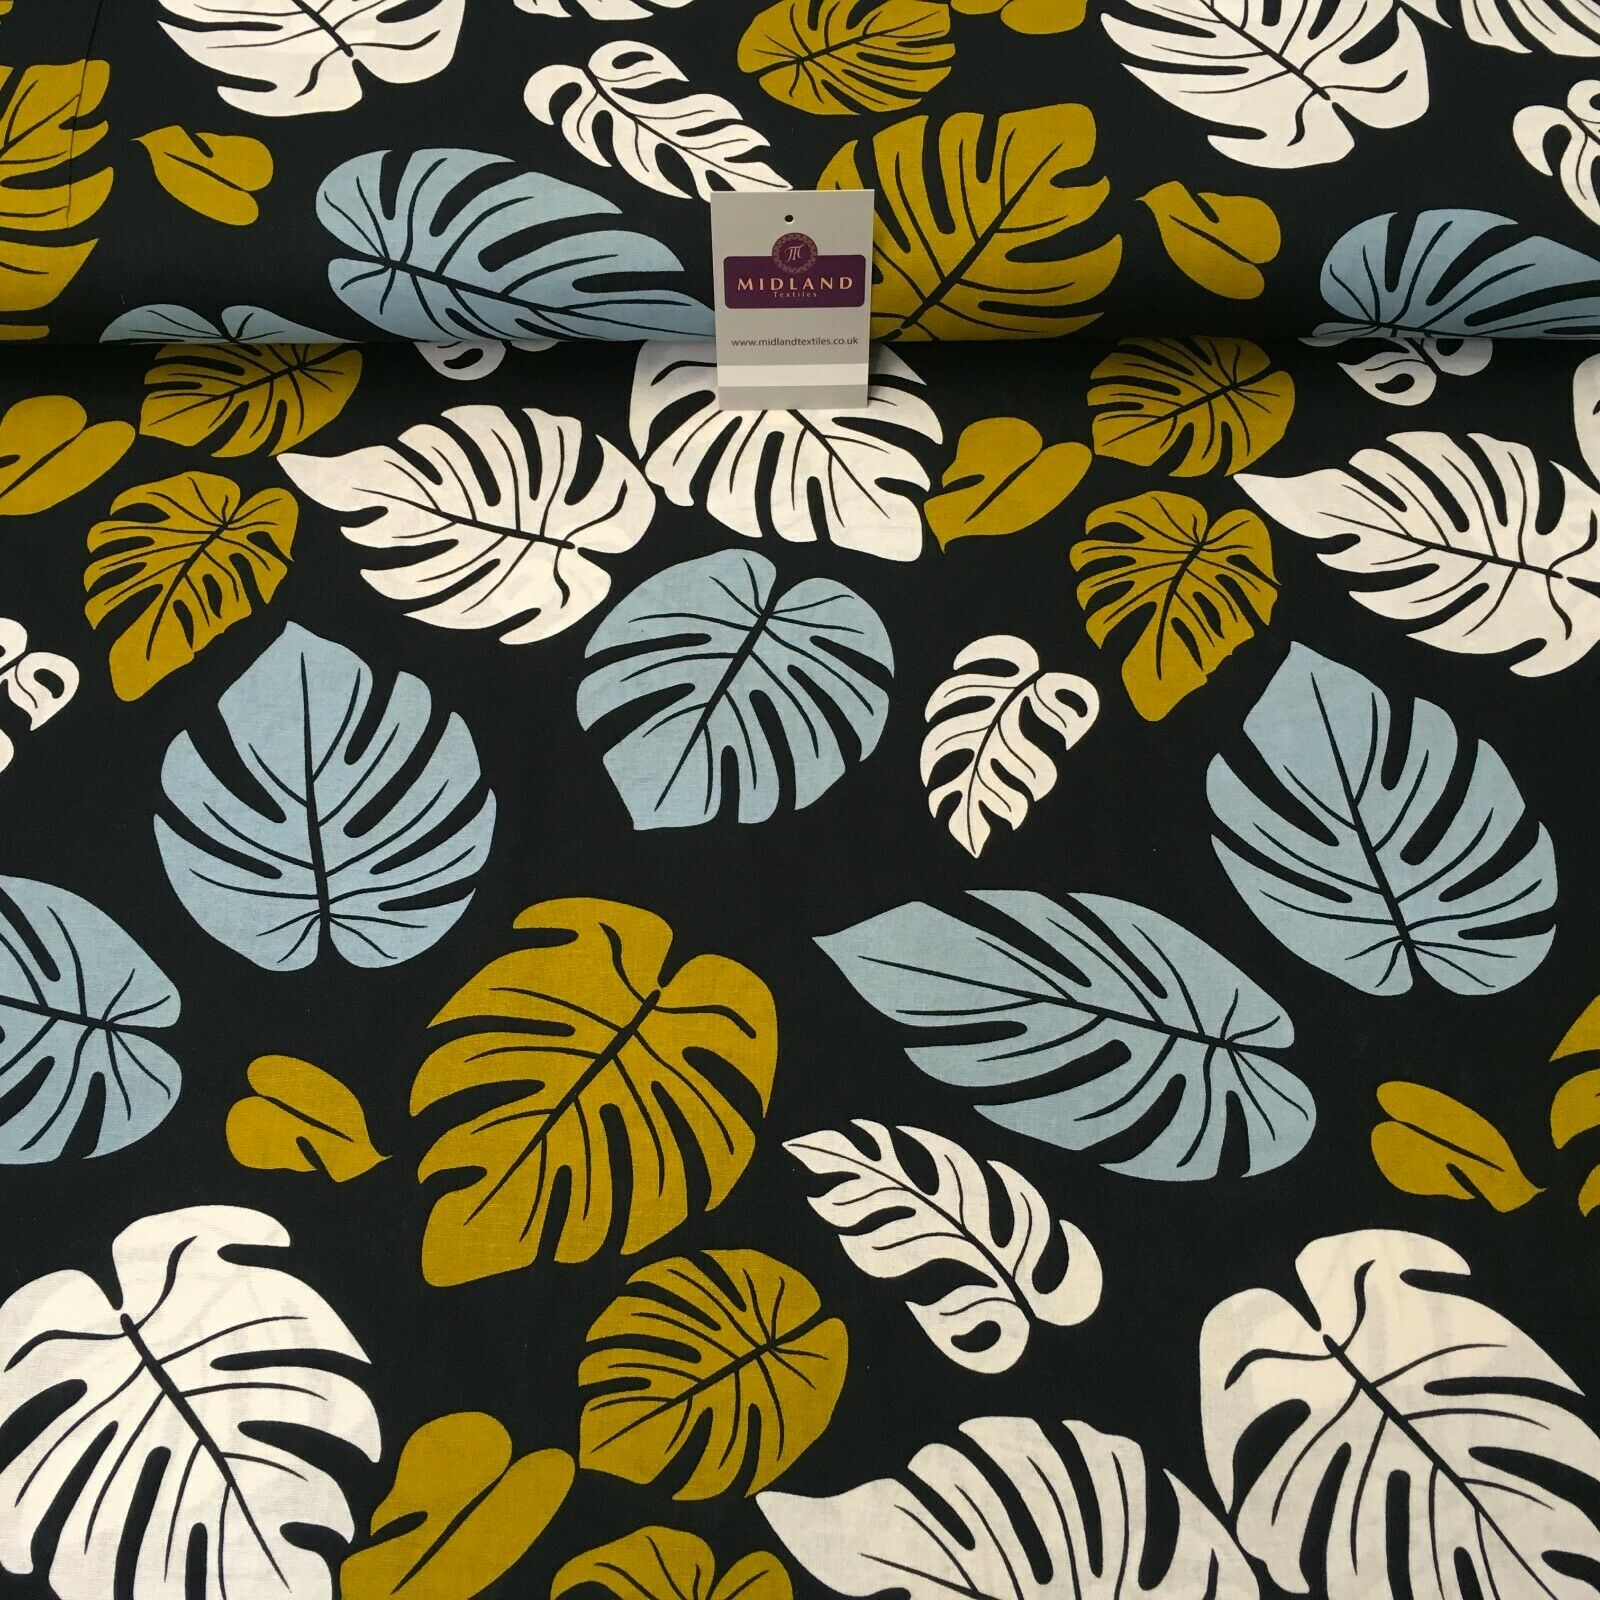 Blue Mustard Leaf Printed Cotton Linen Dress Fabric 150cm Wide MK1086-17